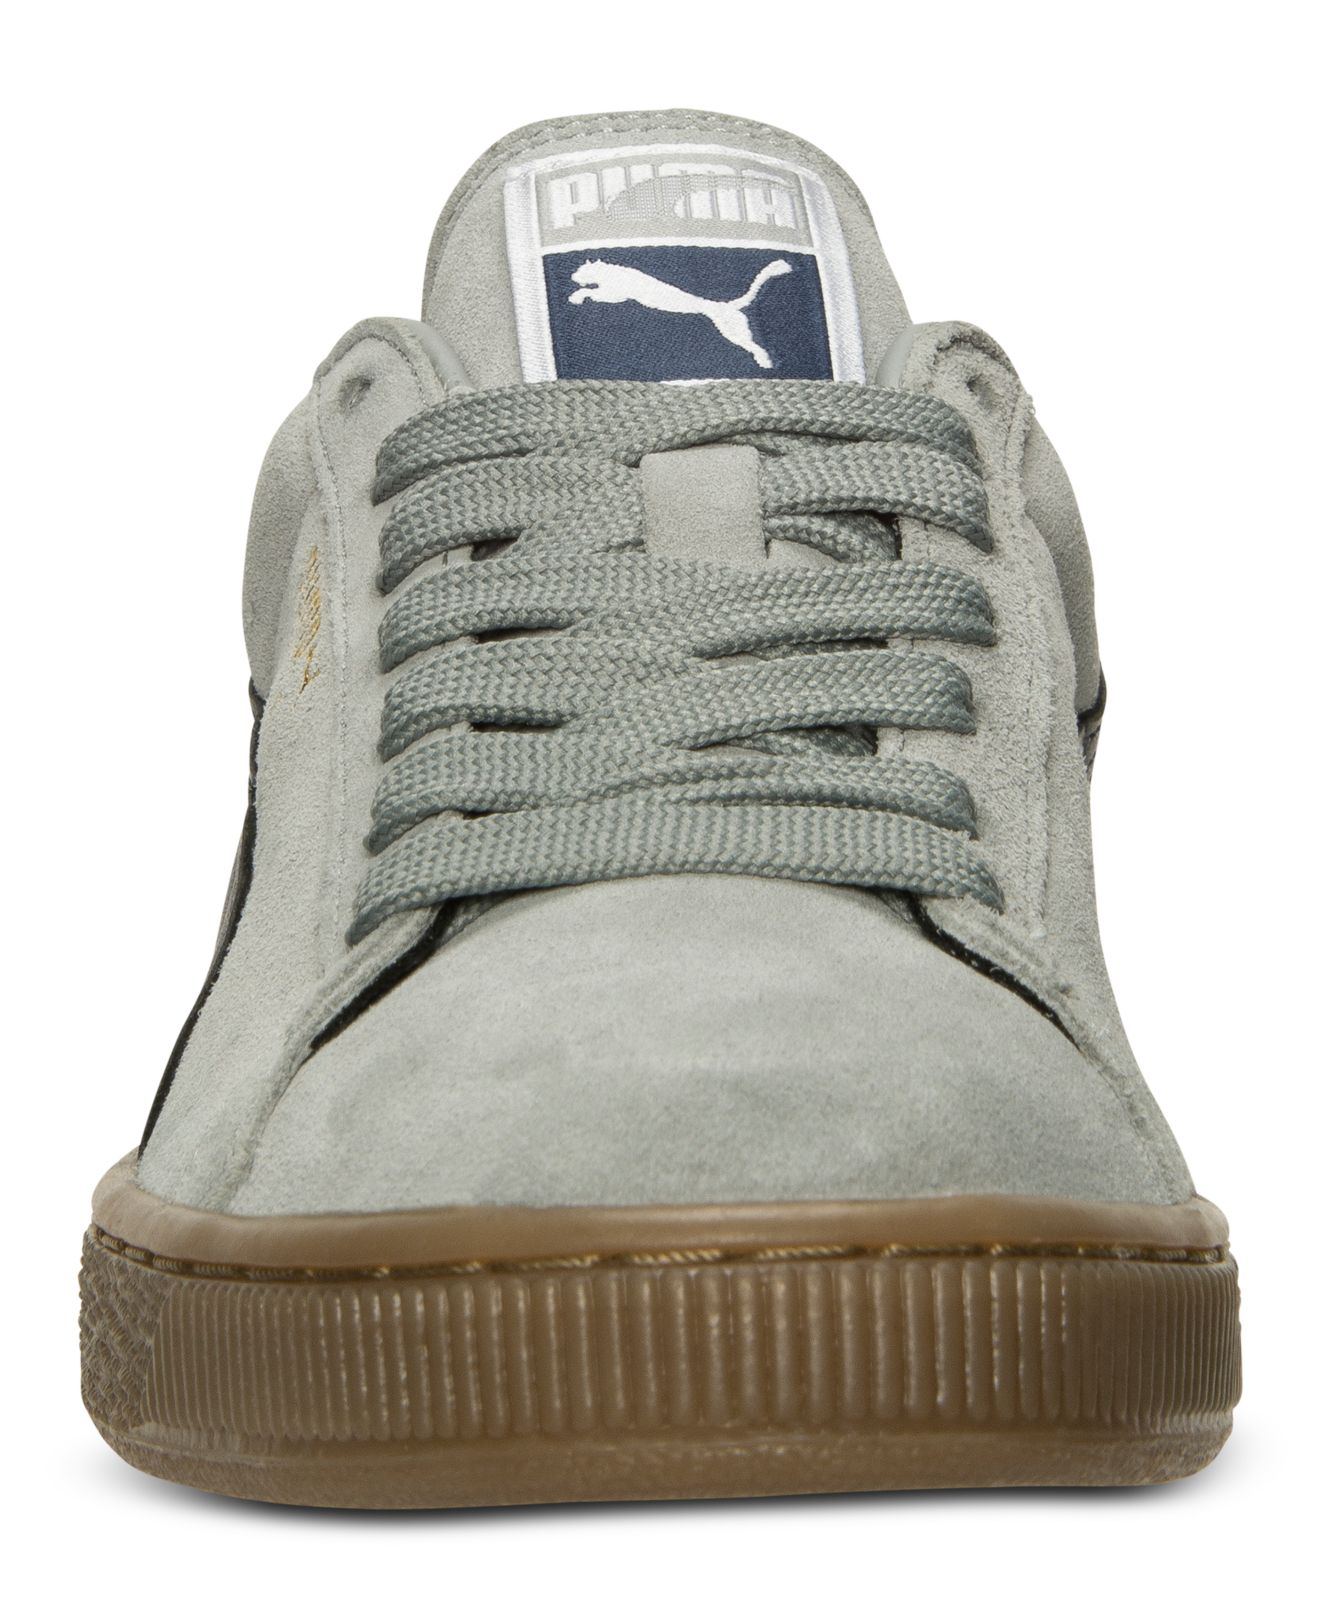 Lyst - PUMA Men S Suede Classic Leather Fs Casual Sneakers From ... 4472796d0